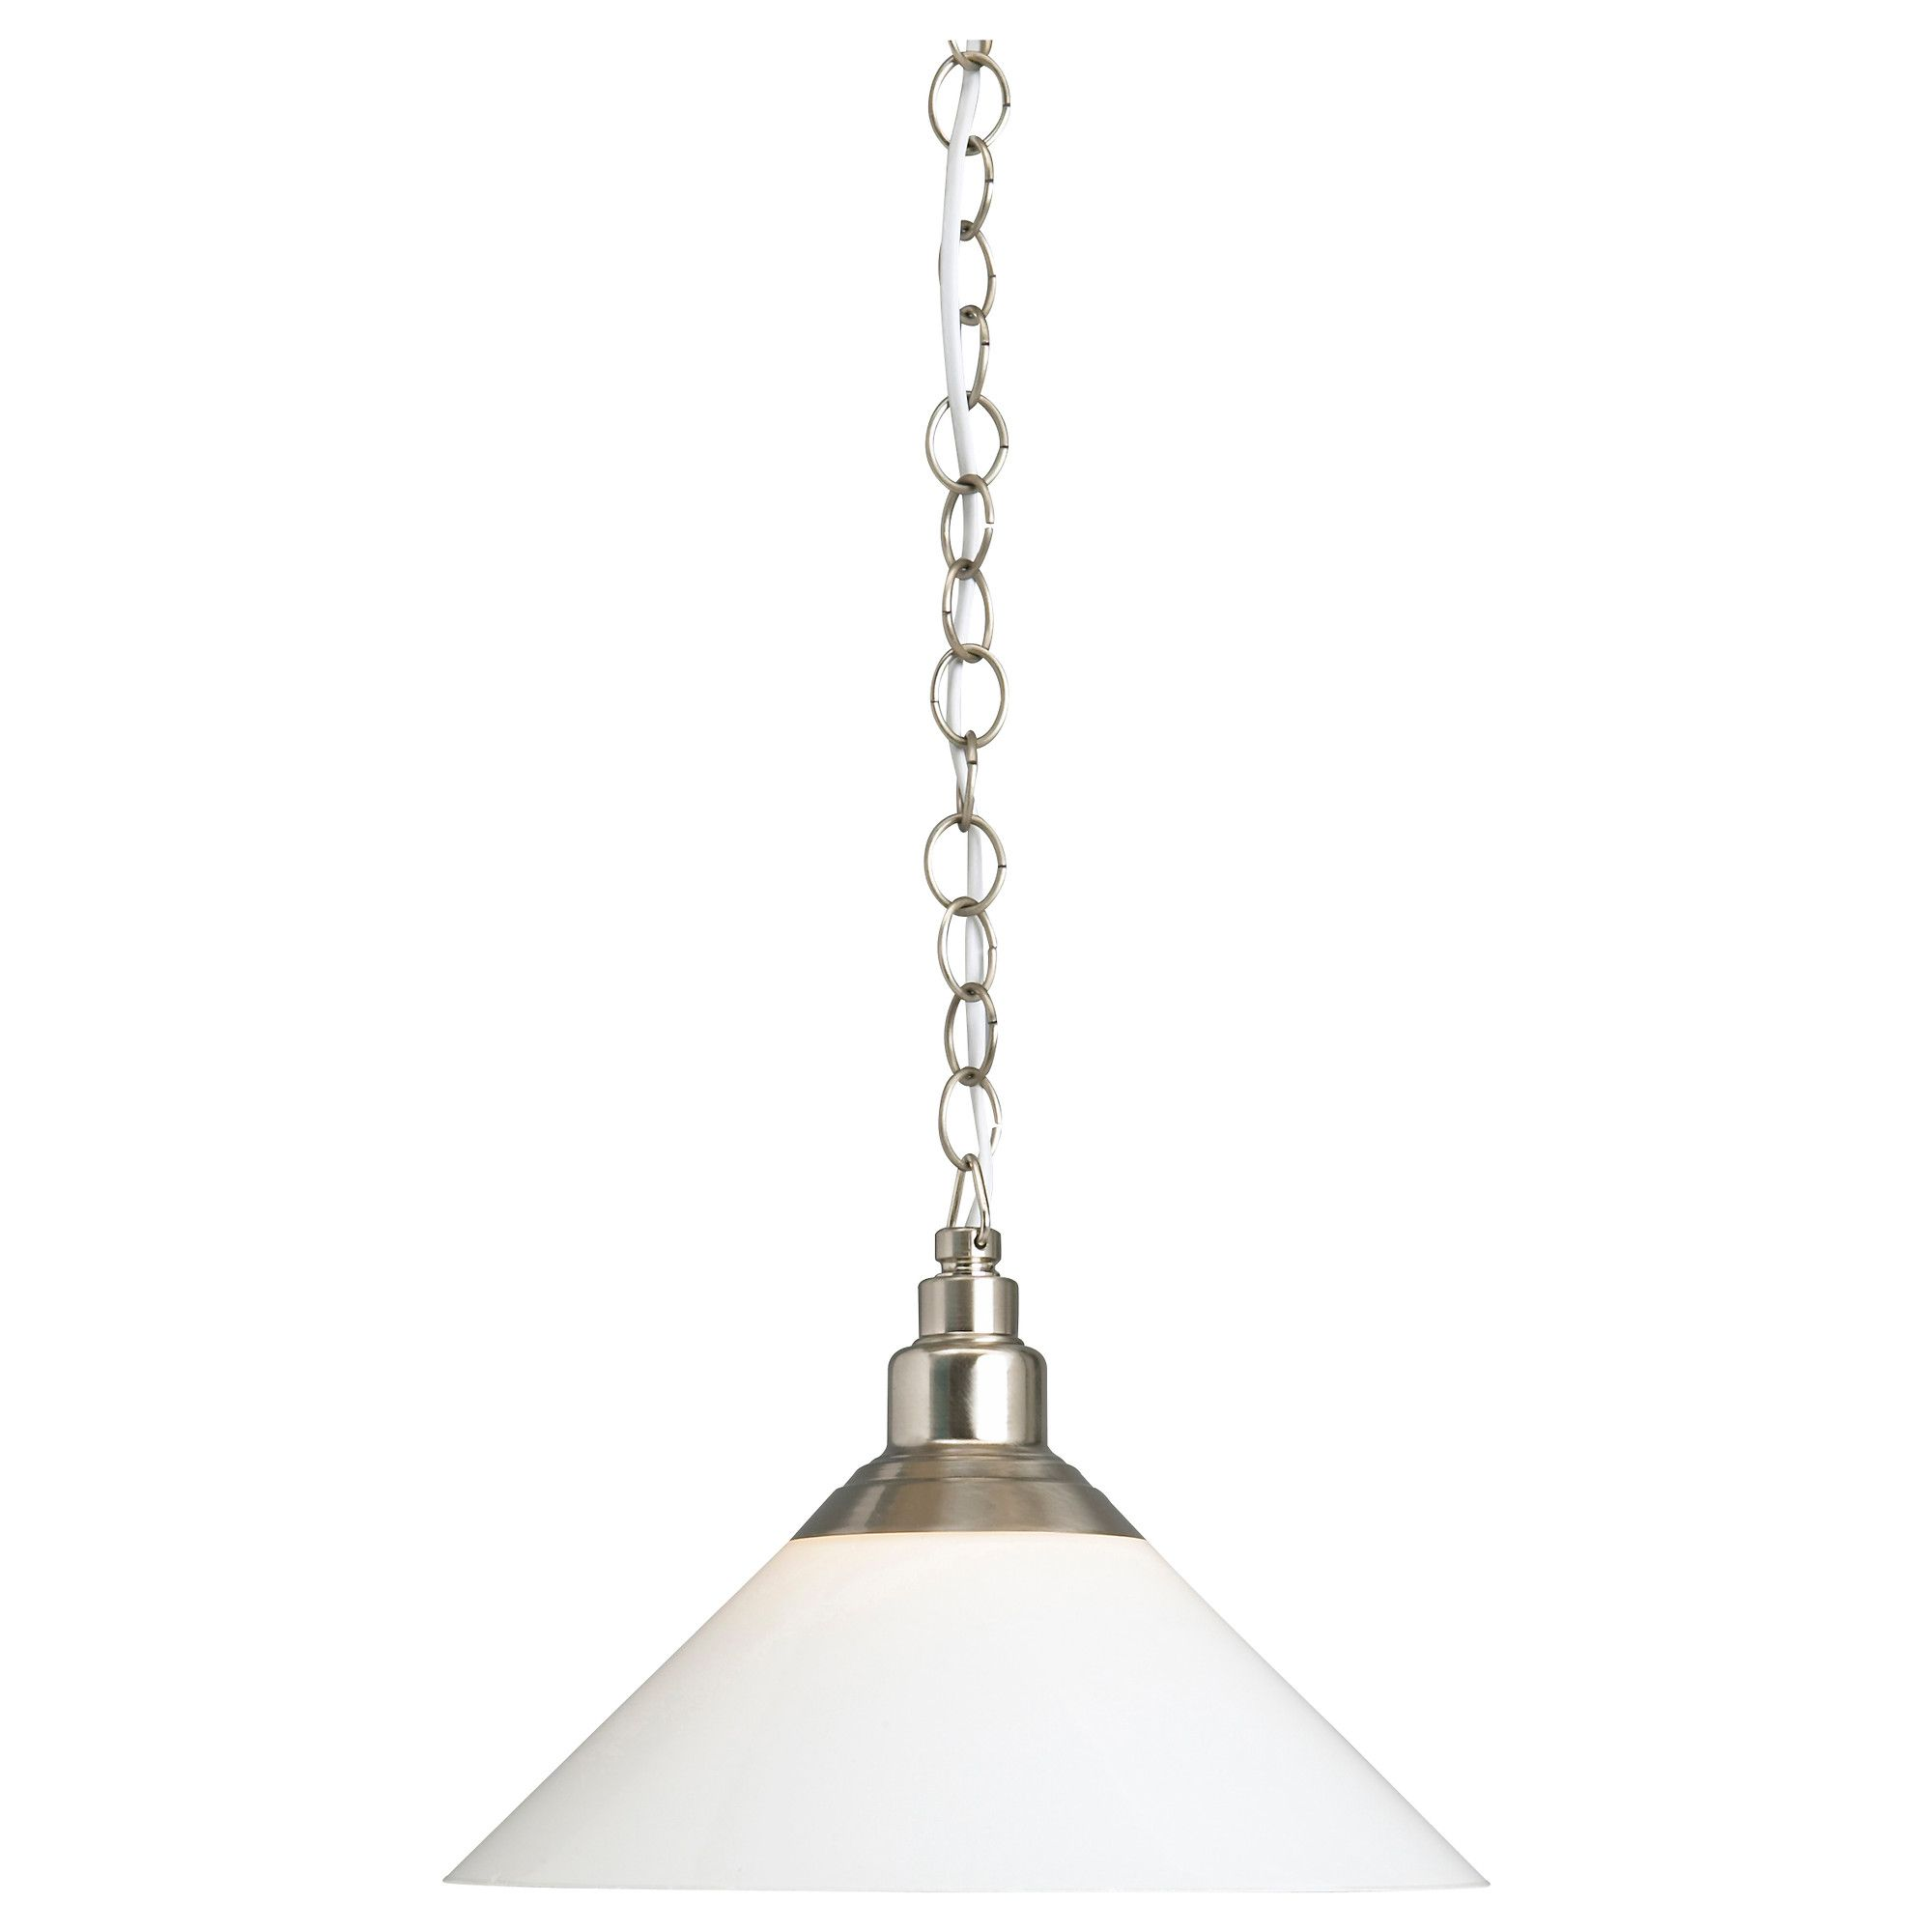 pendant lighting height. KROBY Pendant Lamp - IKEA $19.99Product Dimensions Total Height: 71 \ Lighting Height R